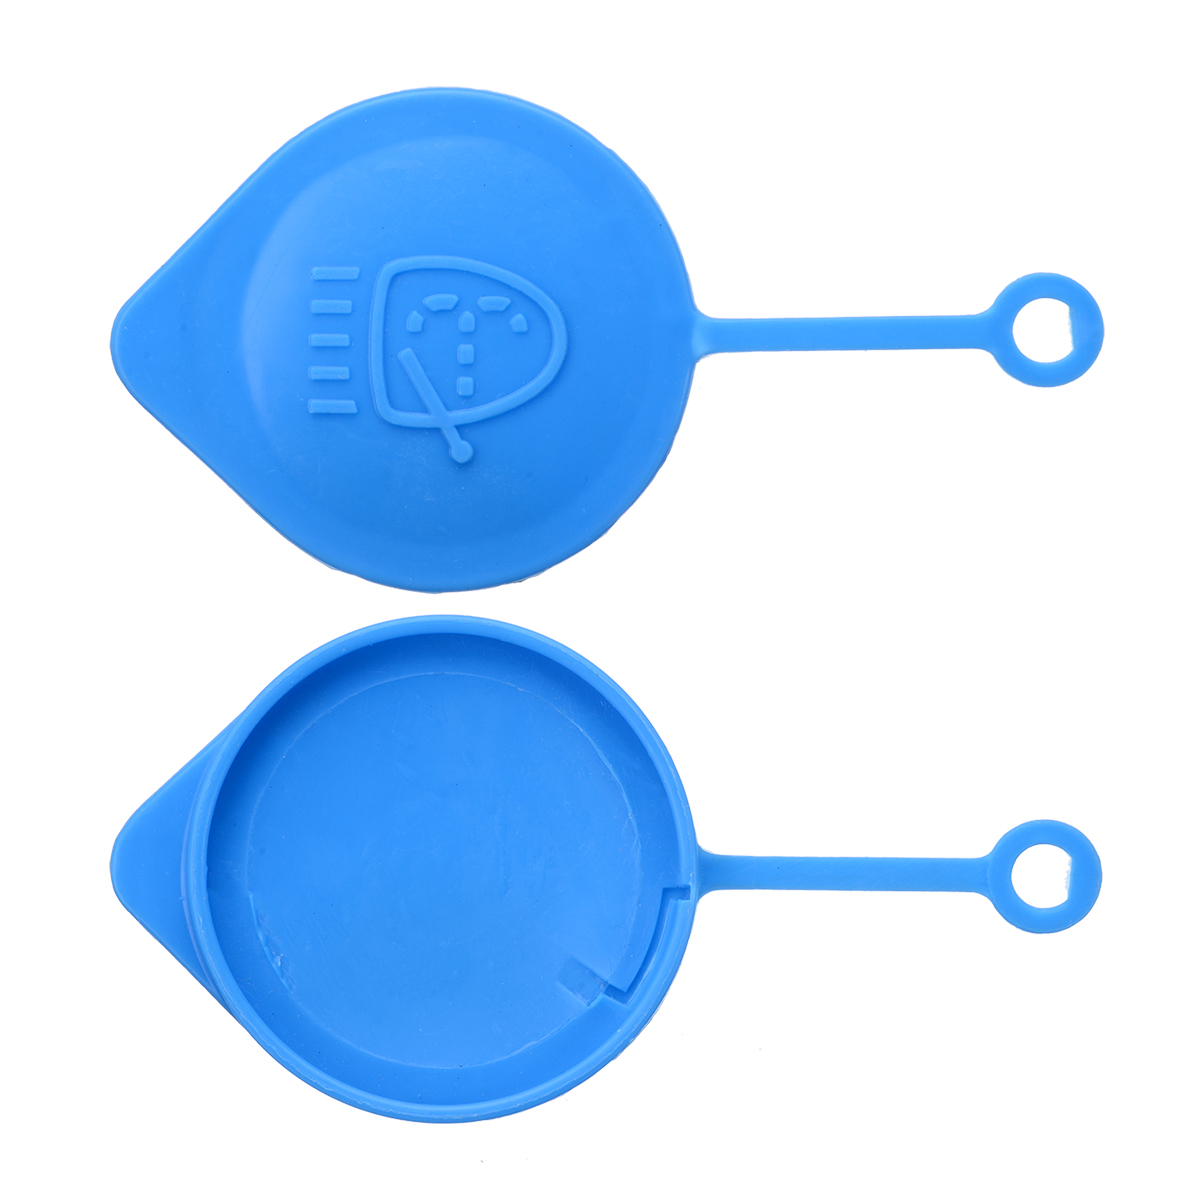 1pcs Blue Windshield Washer Bottle Cap Lid Cover Windshield Washer Practical Wiper Accessories For Honda Accord Civic CRV CRX